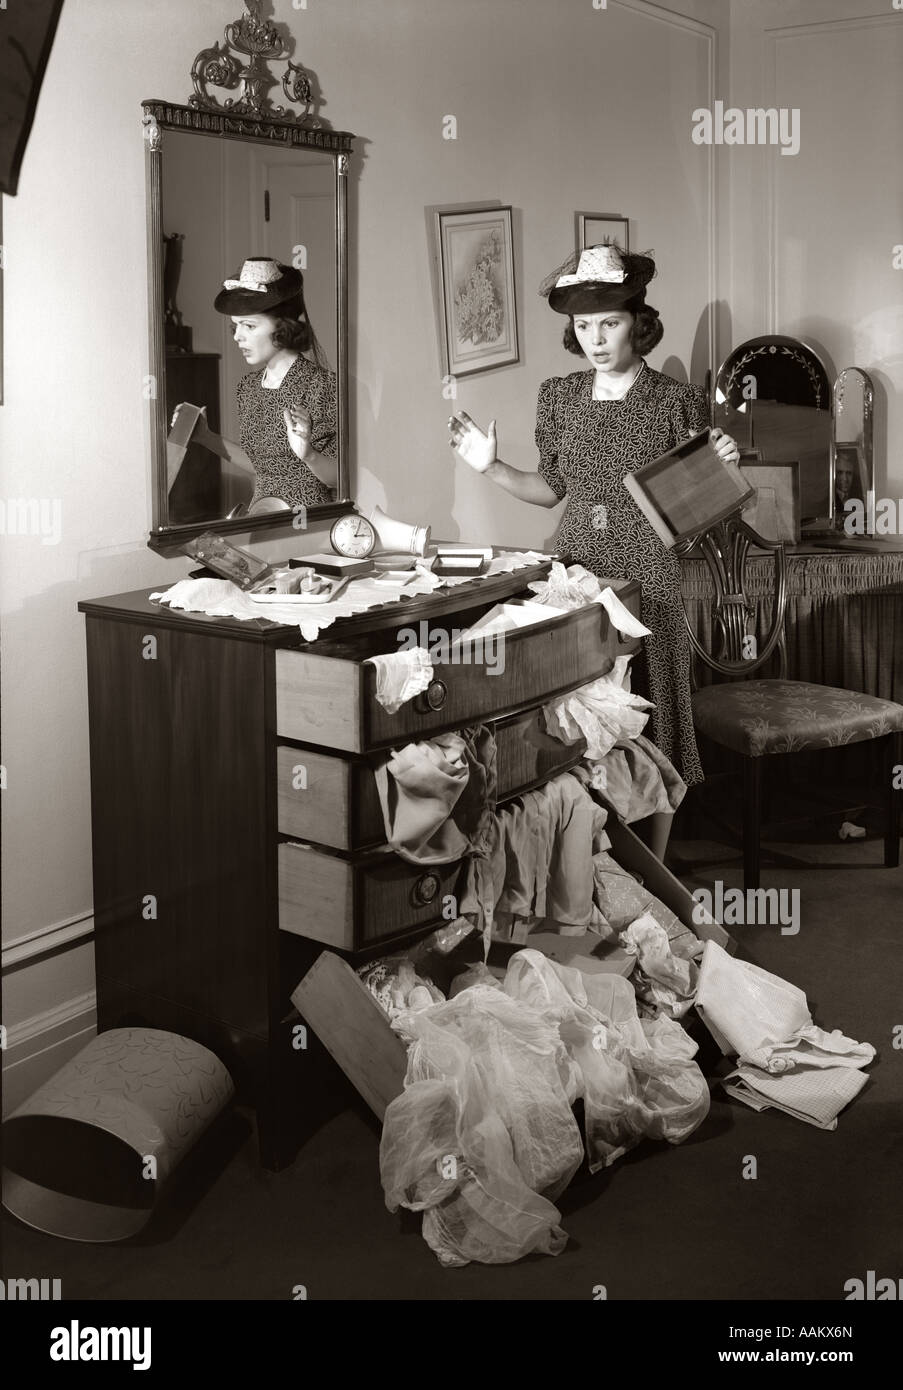 1940s SHOCKED WOMAN DISCOVERS RANSACKED BUREAU IN BEDROOM